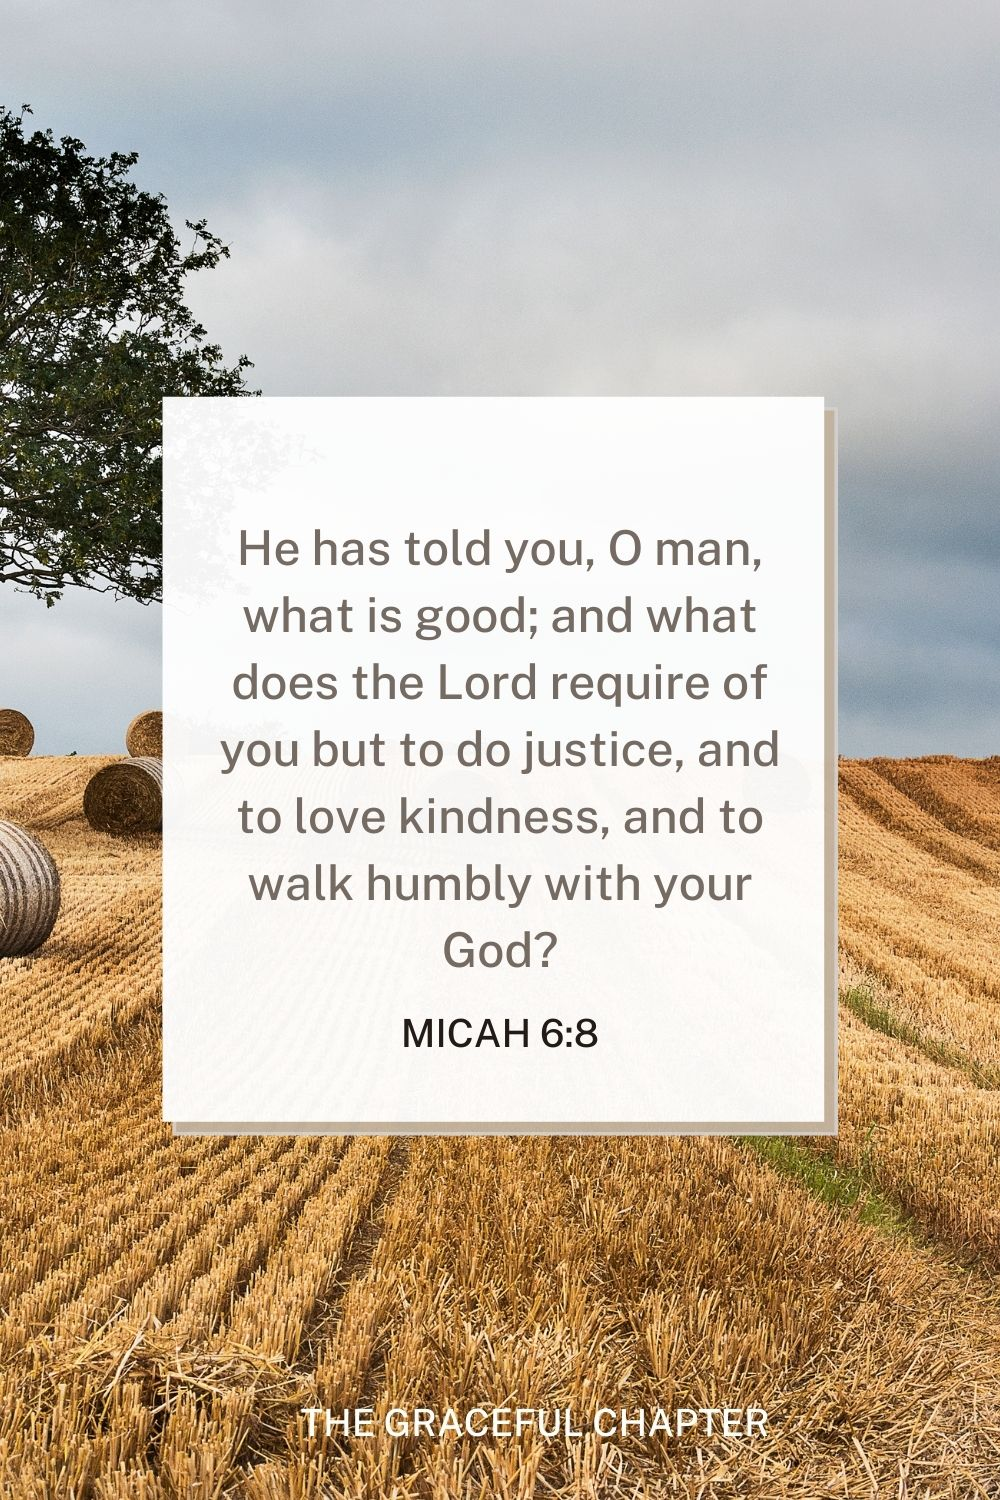 He has told you, O man, what is good; and what does the Lord require of you but to do justice, and to love kindness, and to walk humbly with your God? Micah 6:8